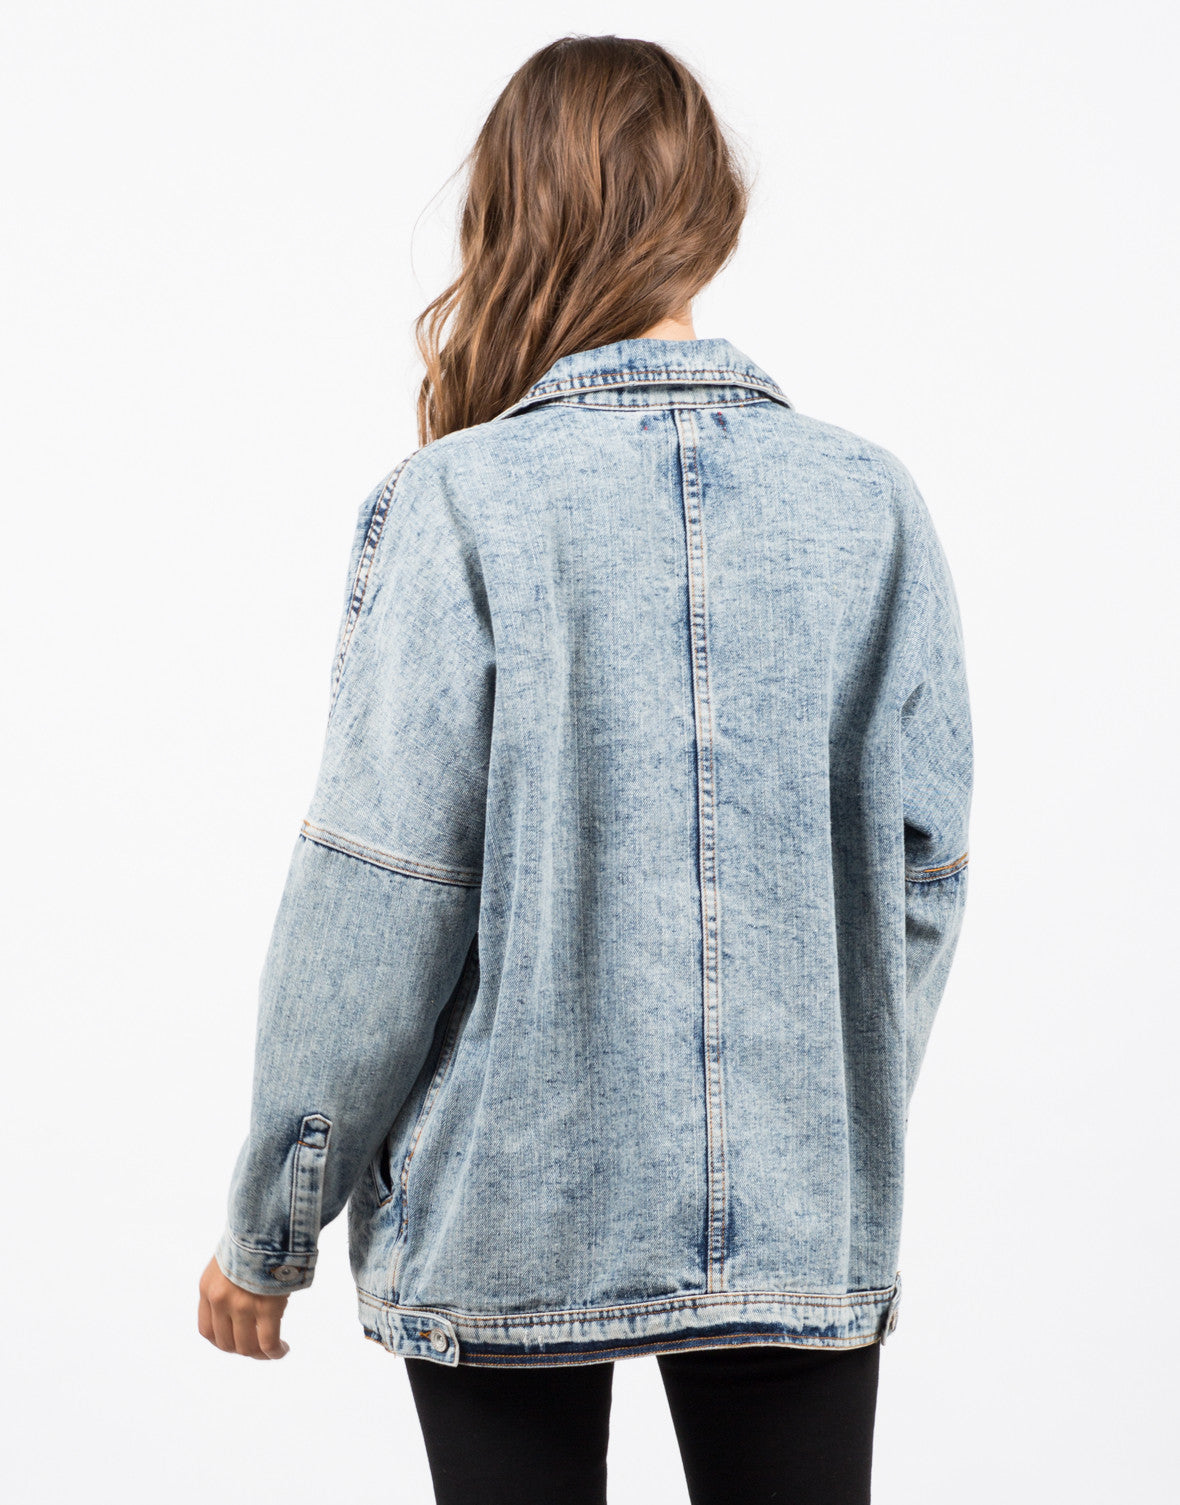 Back View of Oversized Vintage Washed Denim Jacket